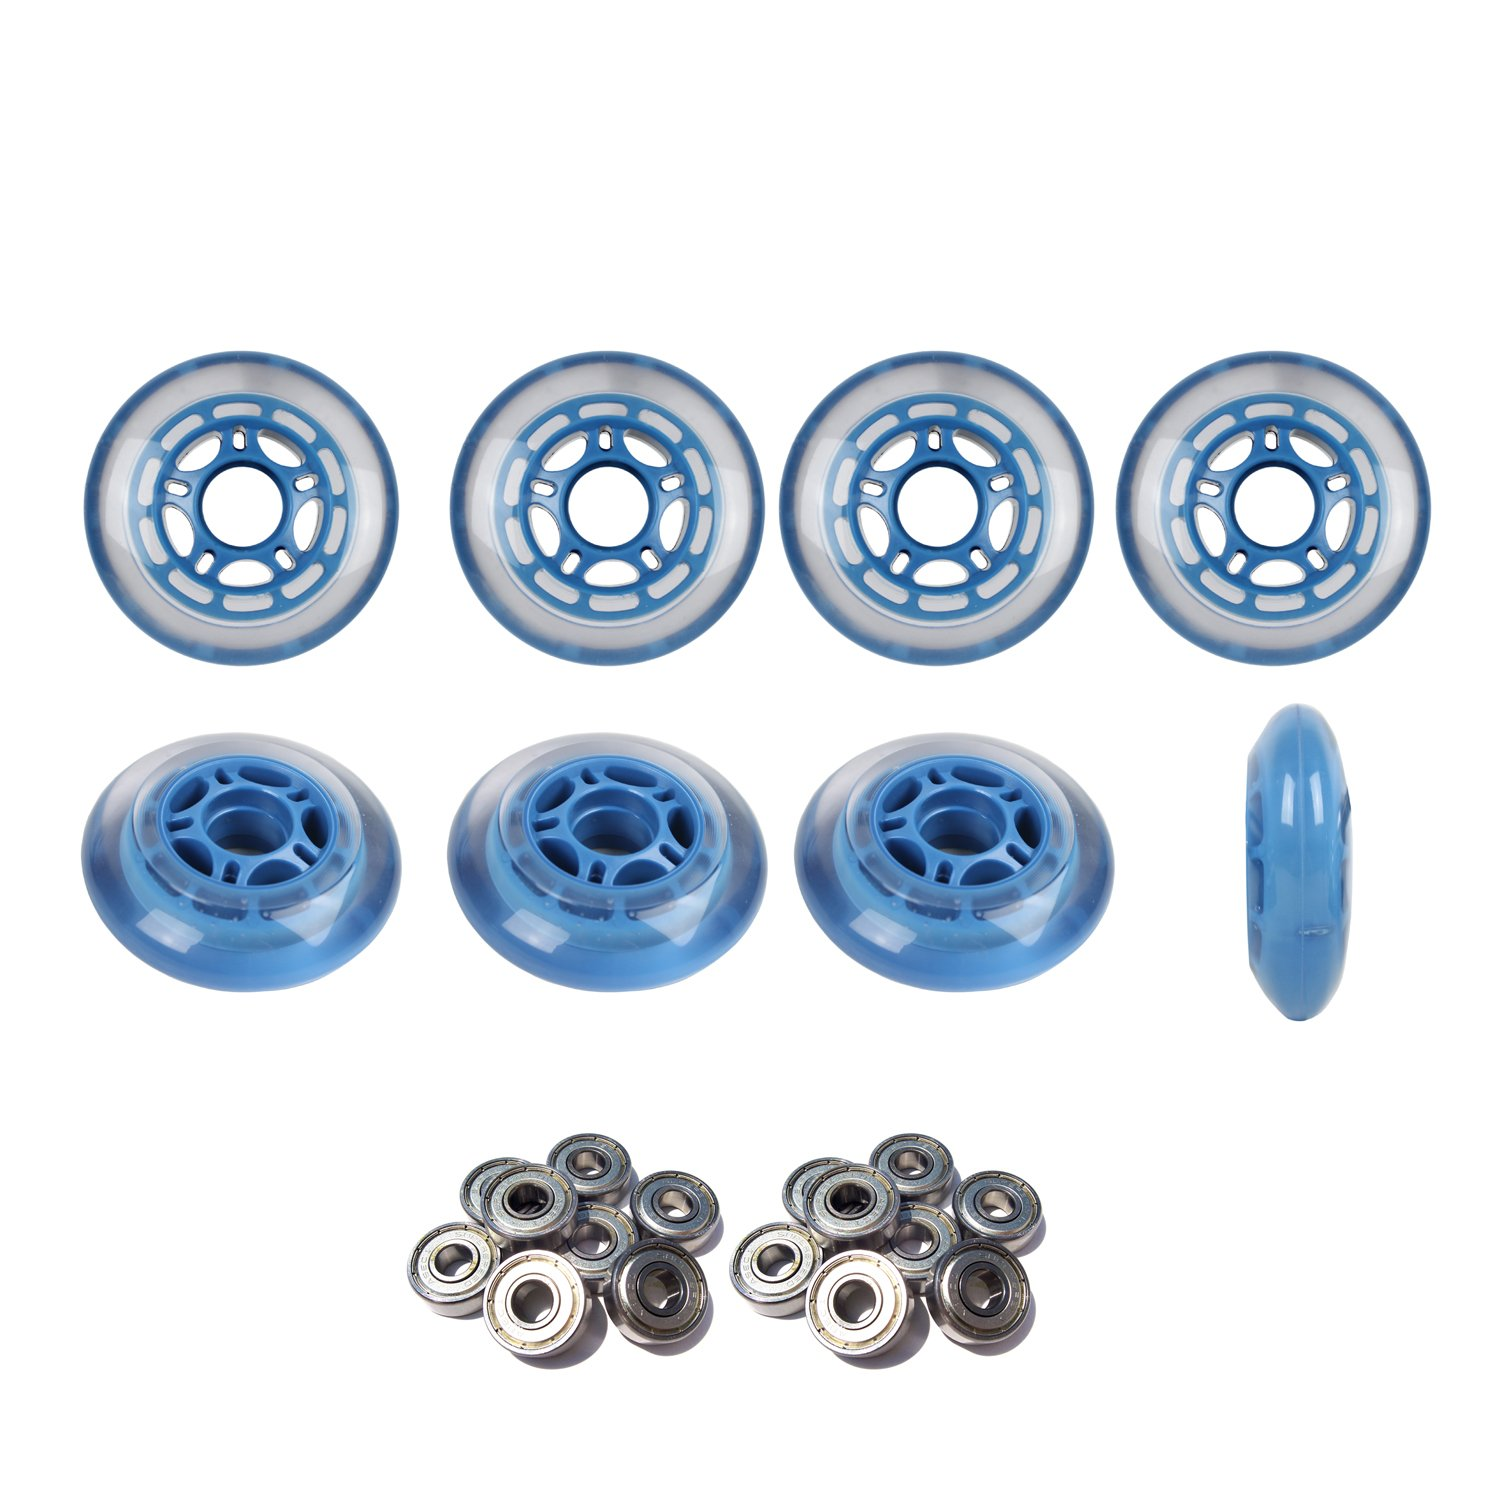 Player's Choice Roller Hockey Wheels 72mm 78A Soft Inline Skate Blue 8 Pack with Abec 9 Bearings